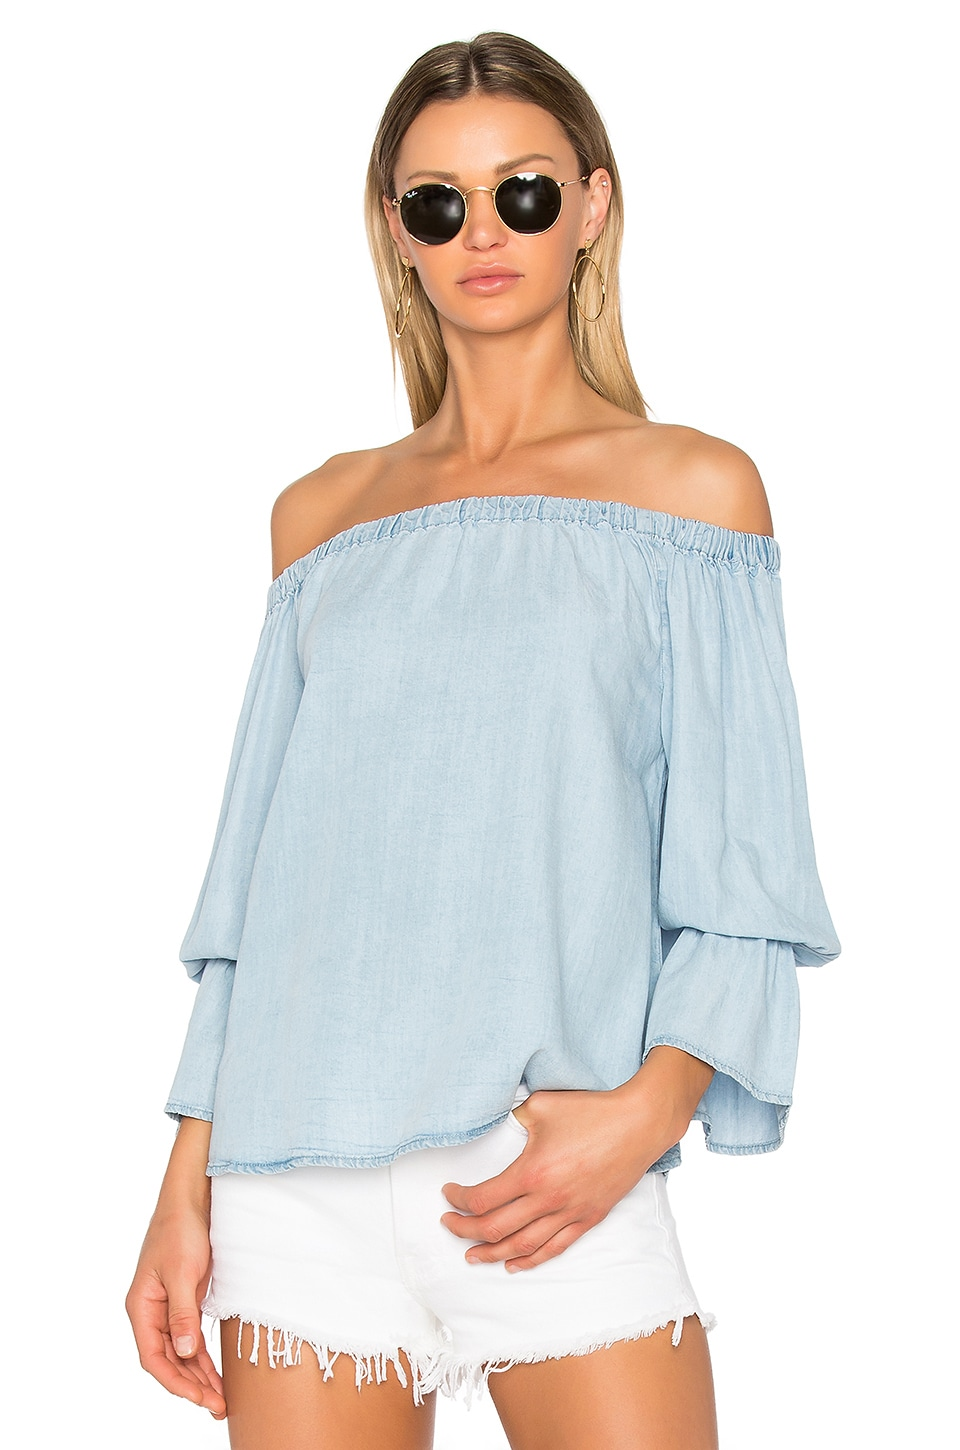 Sanctuary Charlotte Top in Sun Bleached